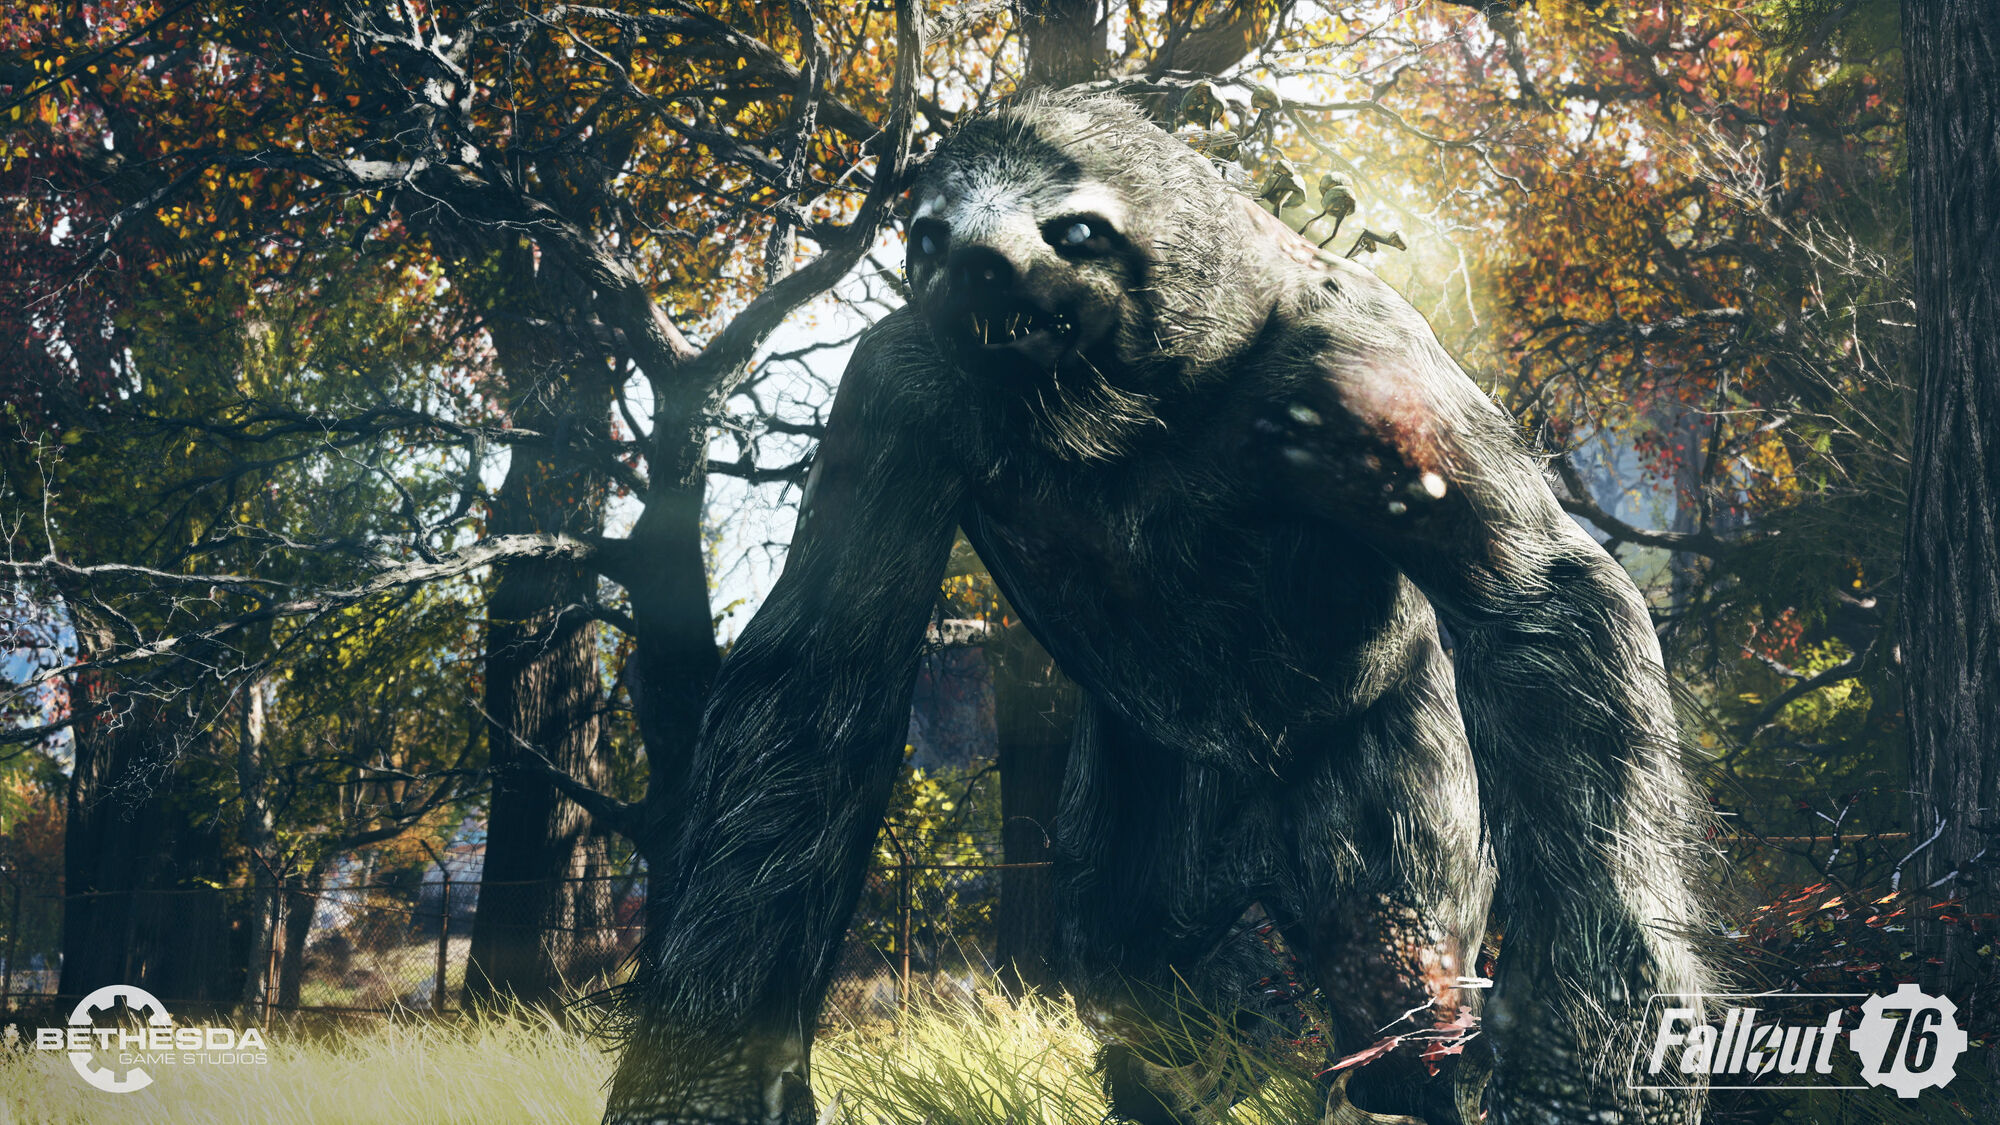 Image result for fallout 76 mega sloth